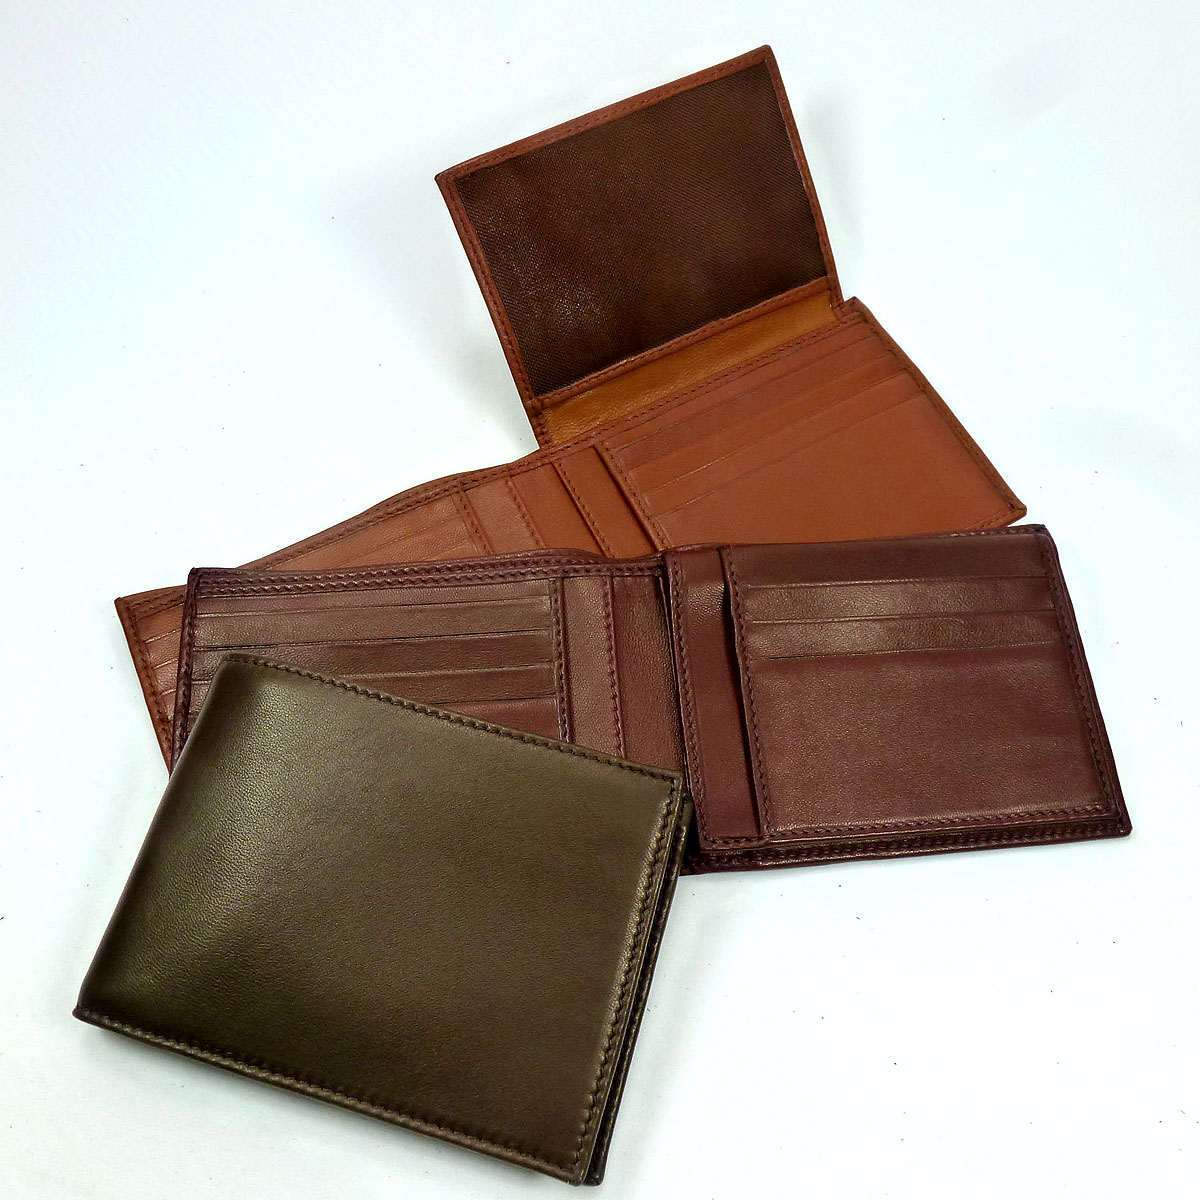 1369 men's wallet flap italian id 11 slots cards by Bottega Fiorentina